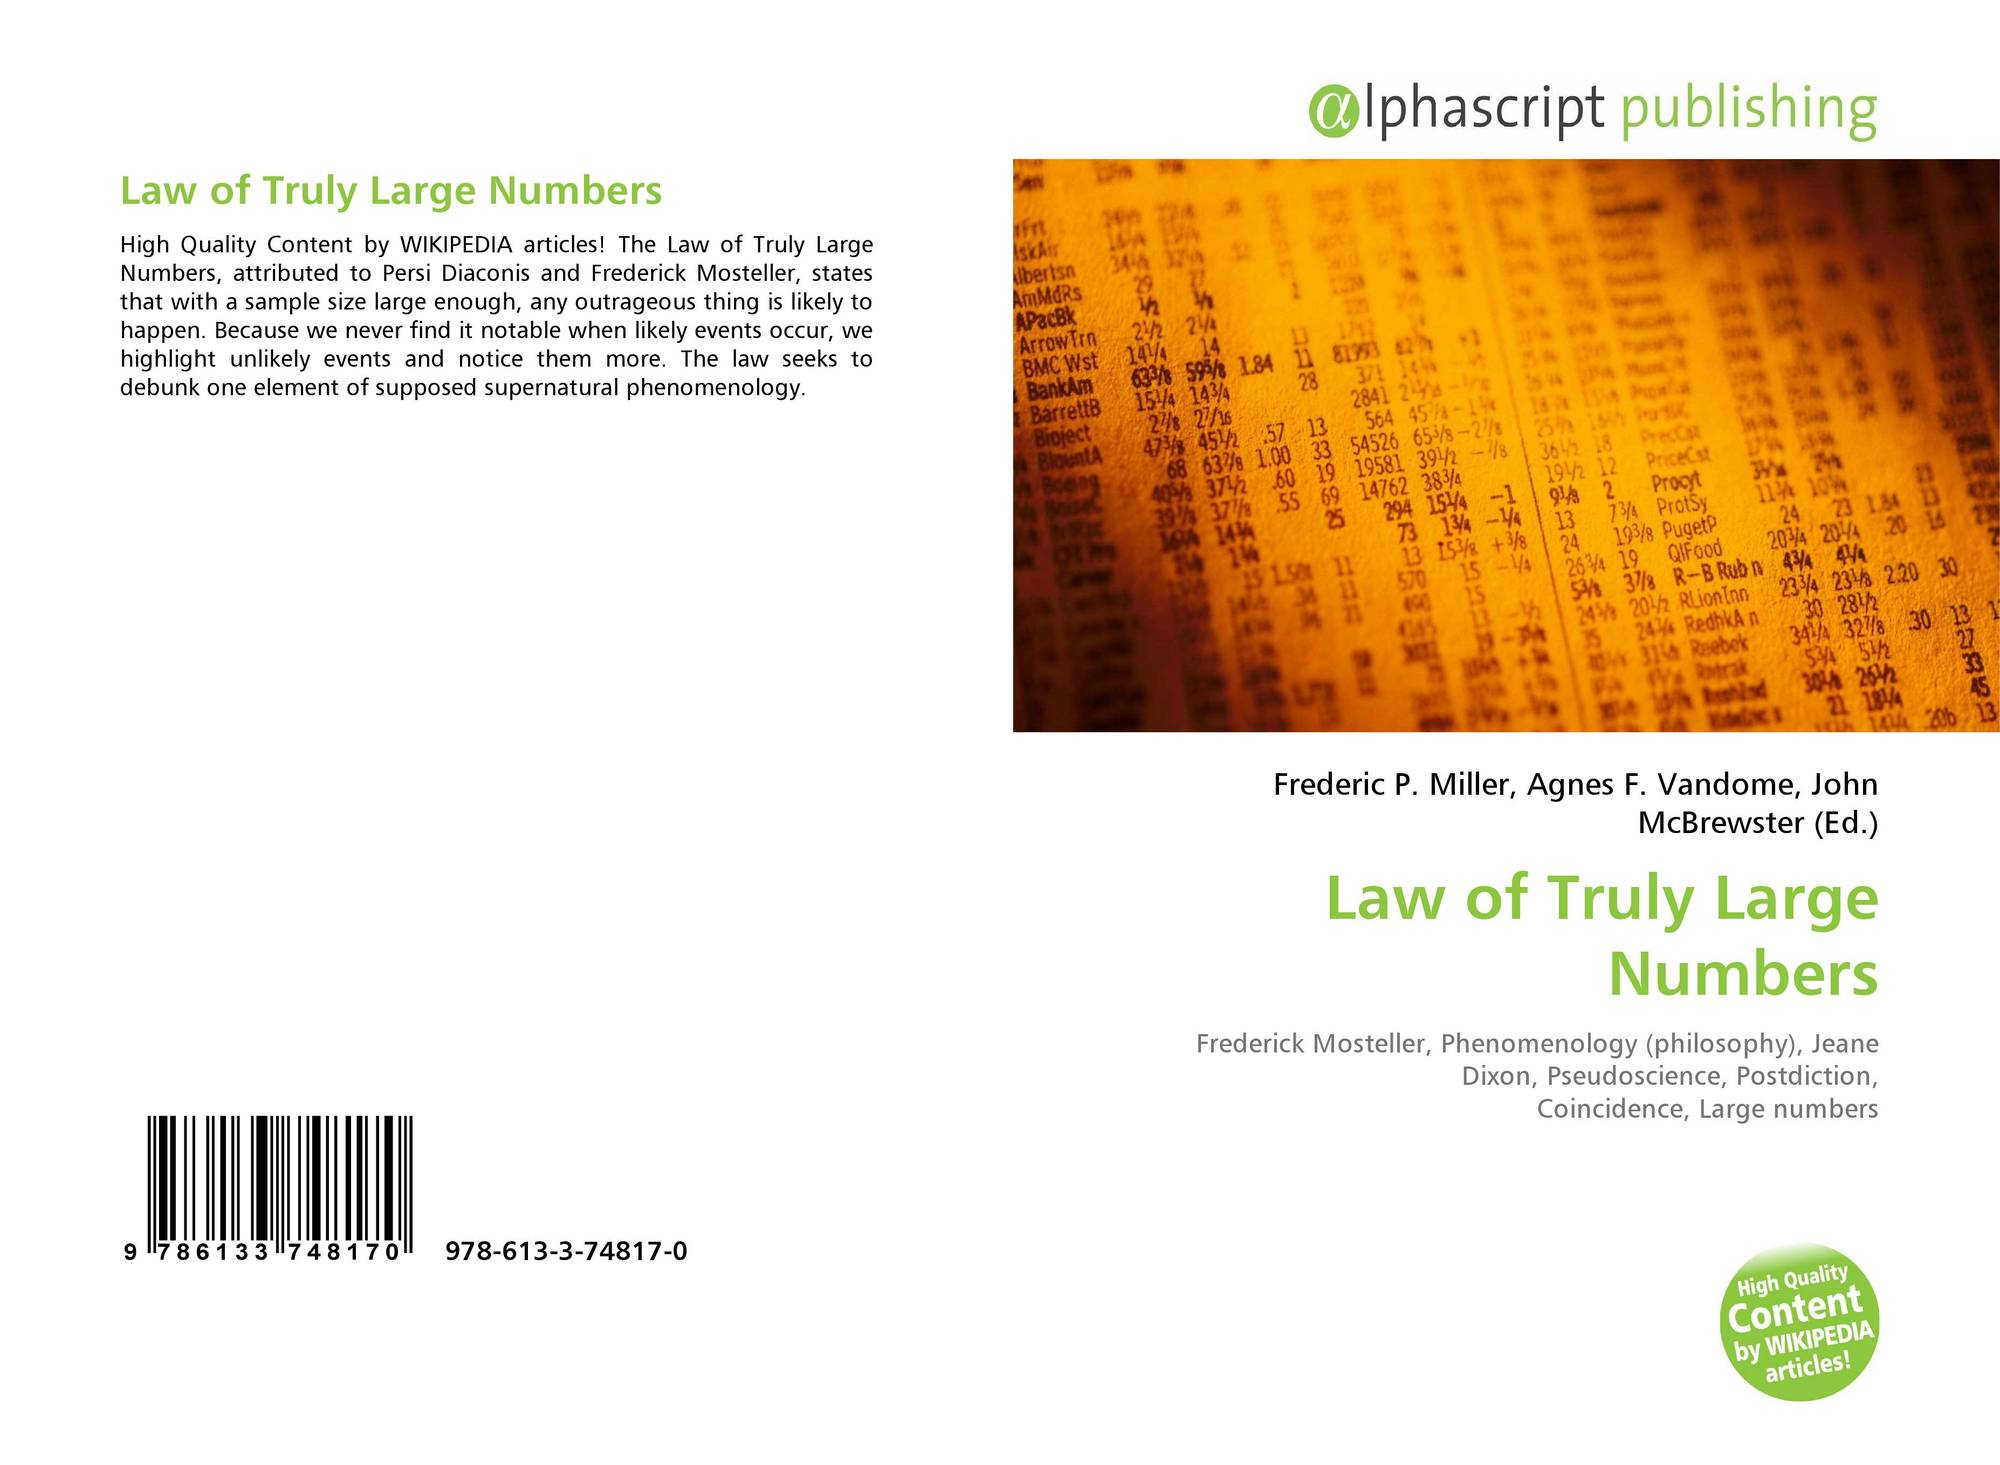 Law of Truly Large Numbers, 18 18 18 18 18, 1818186 ...